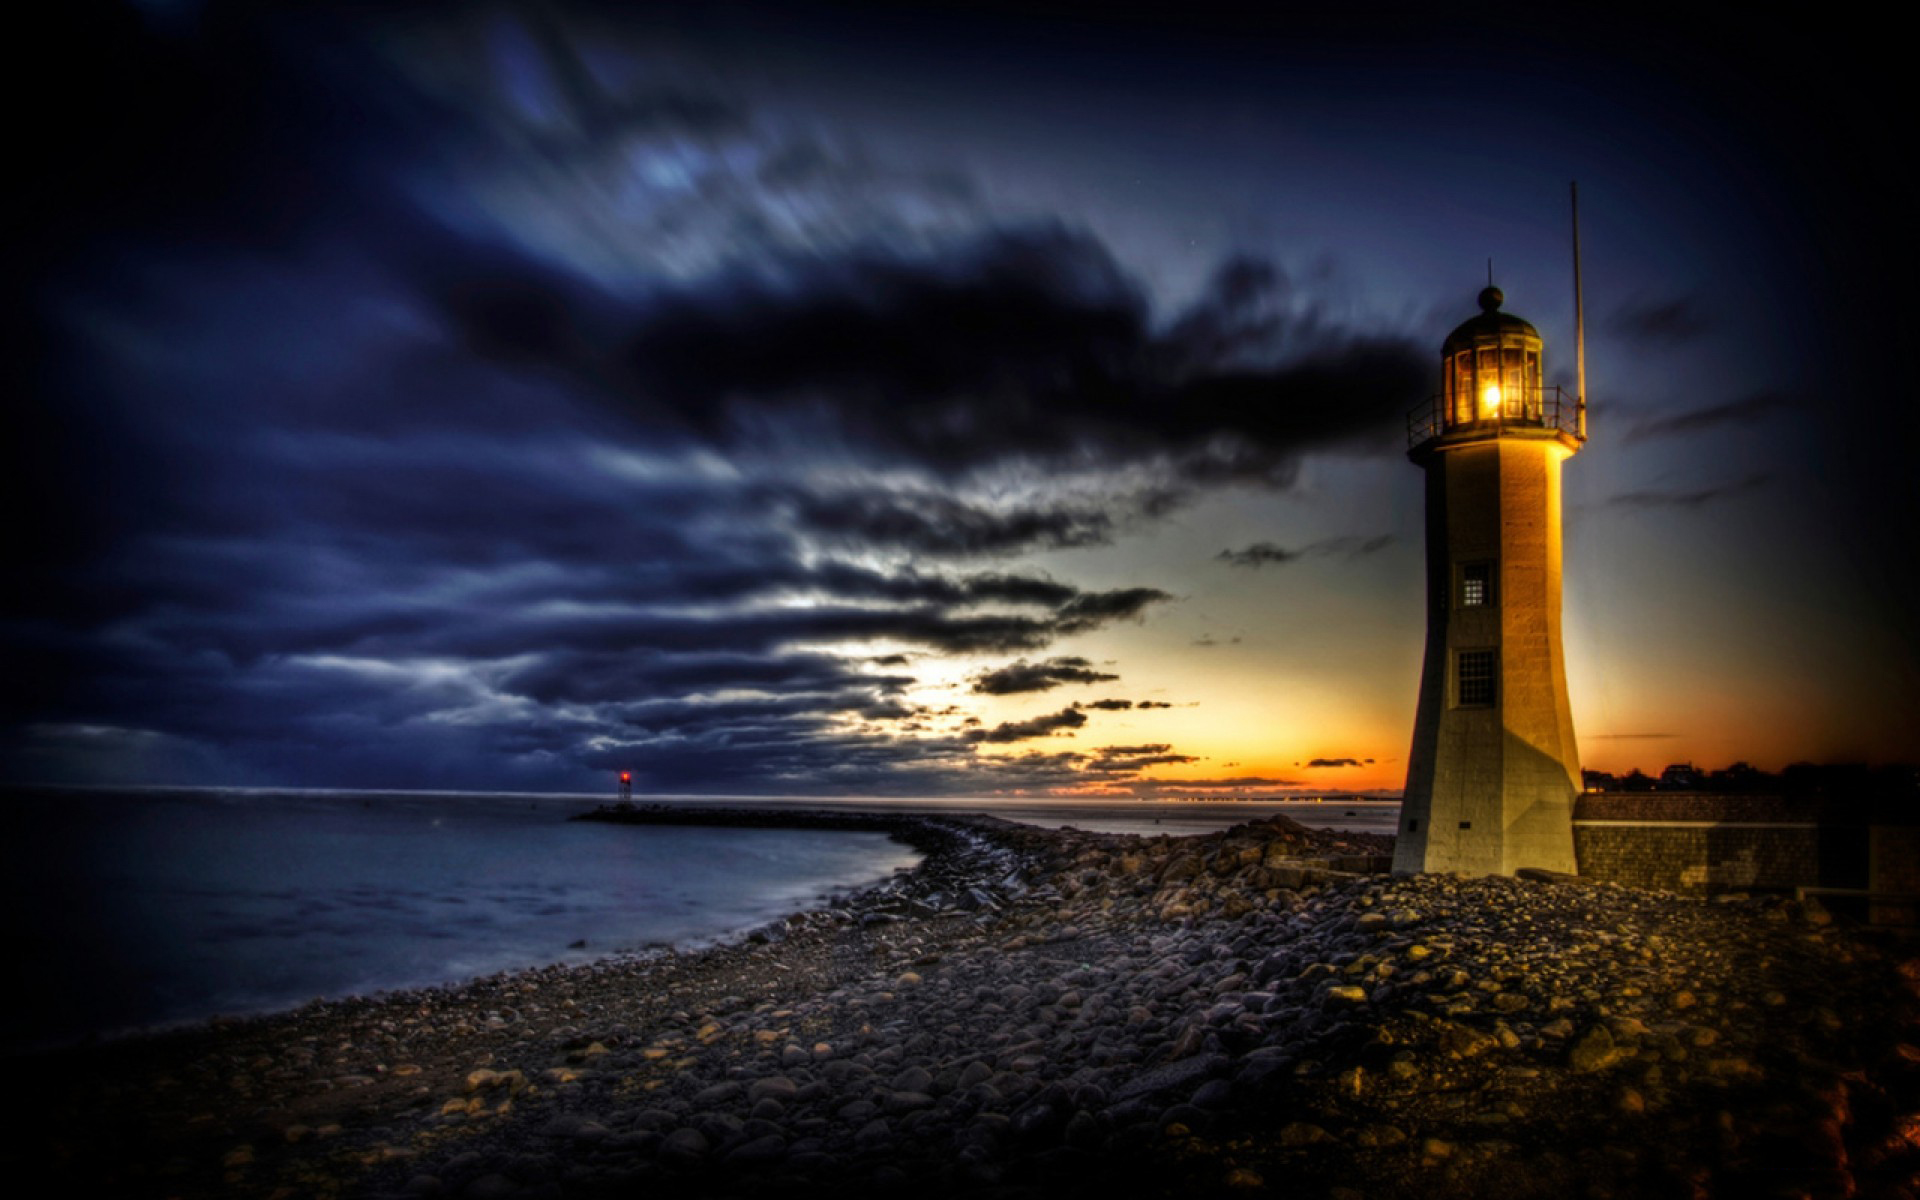 Hd Wallpapers High Definition: Lighthouse Desktop Wallpaper High Definition